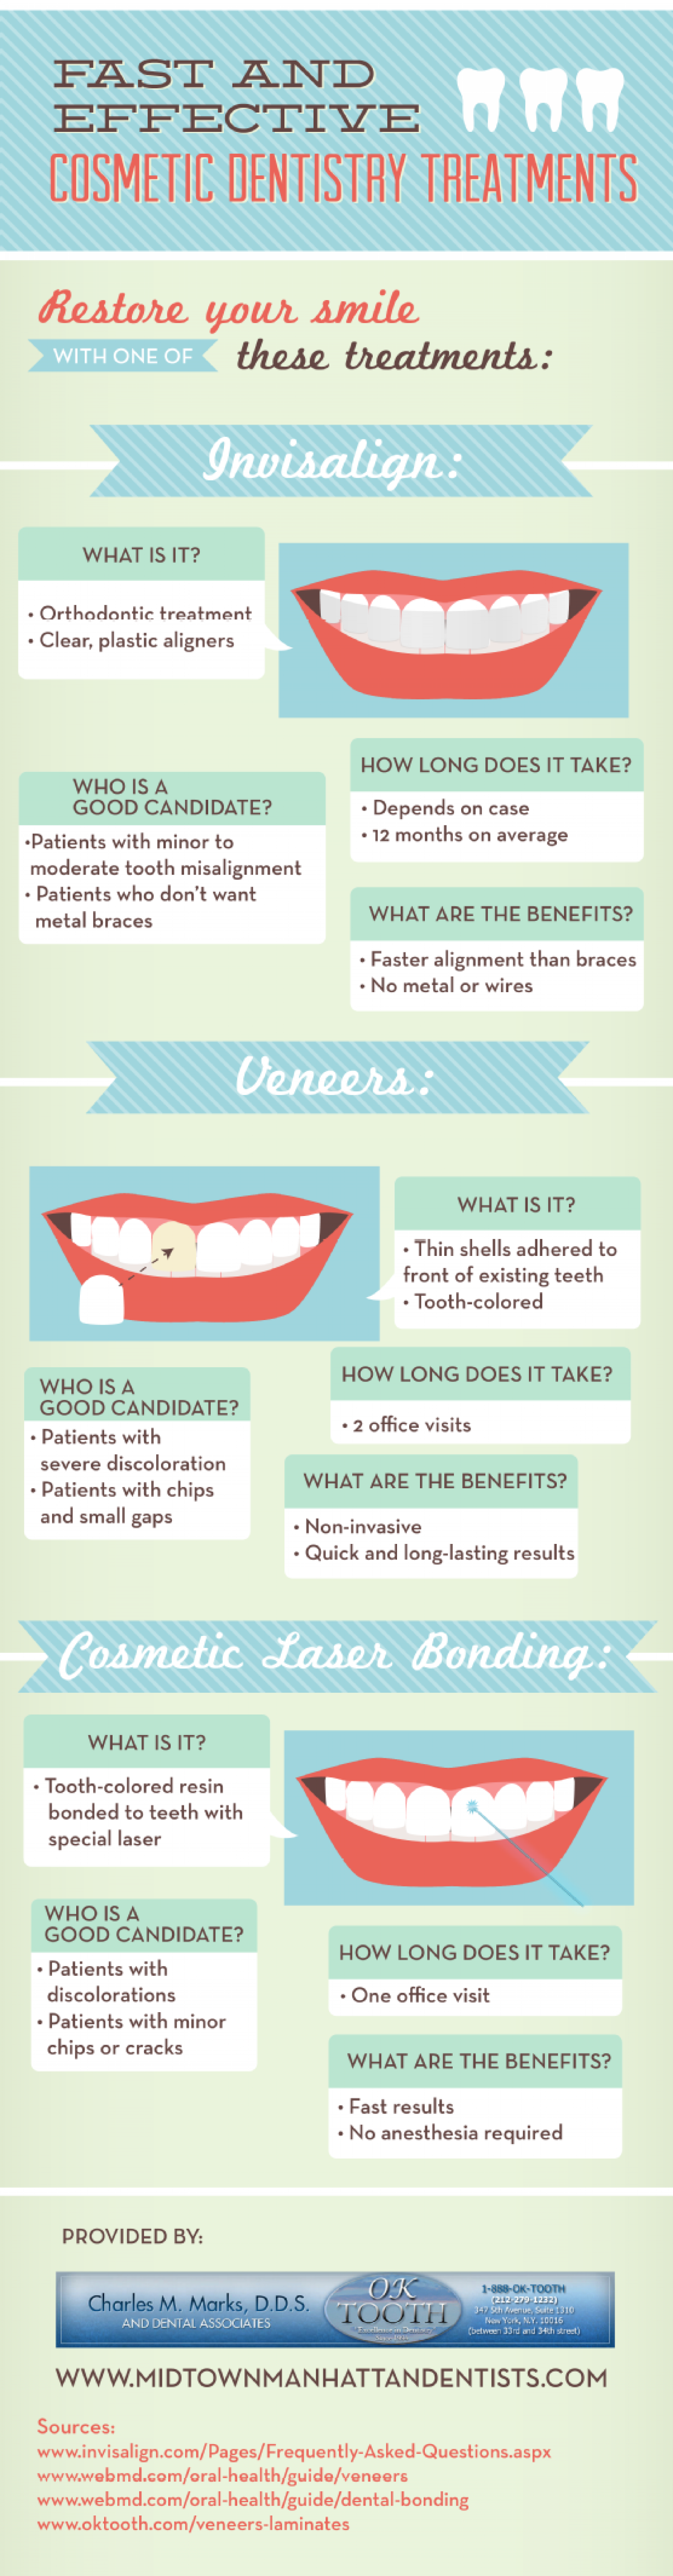 Fast and Effective Cosmetic Dentistry Treatments Infographic